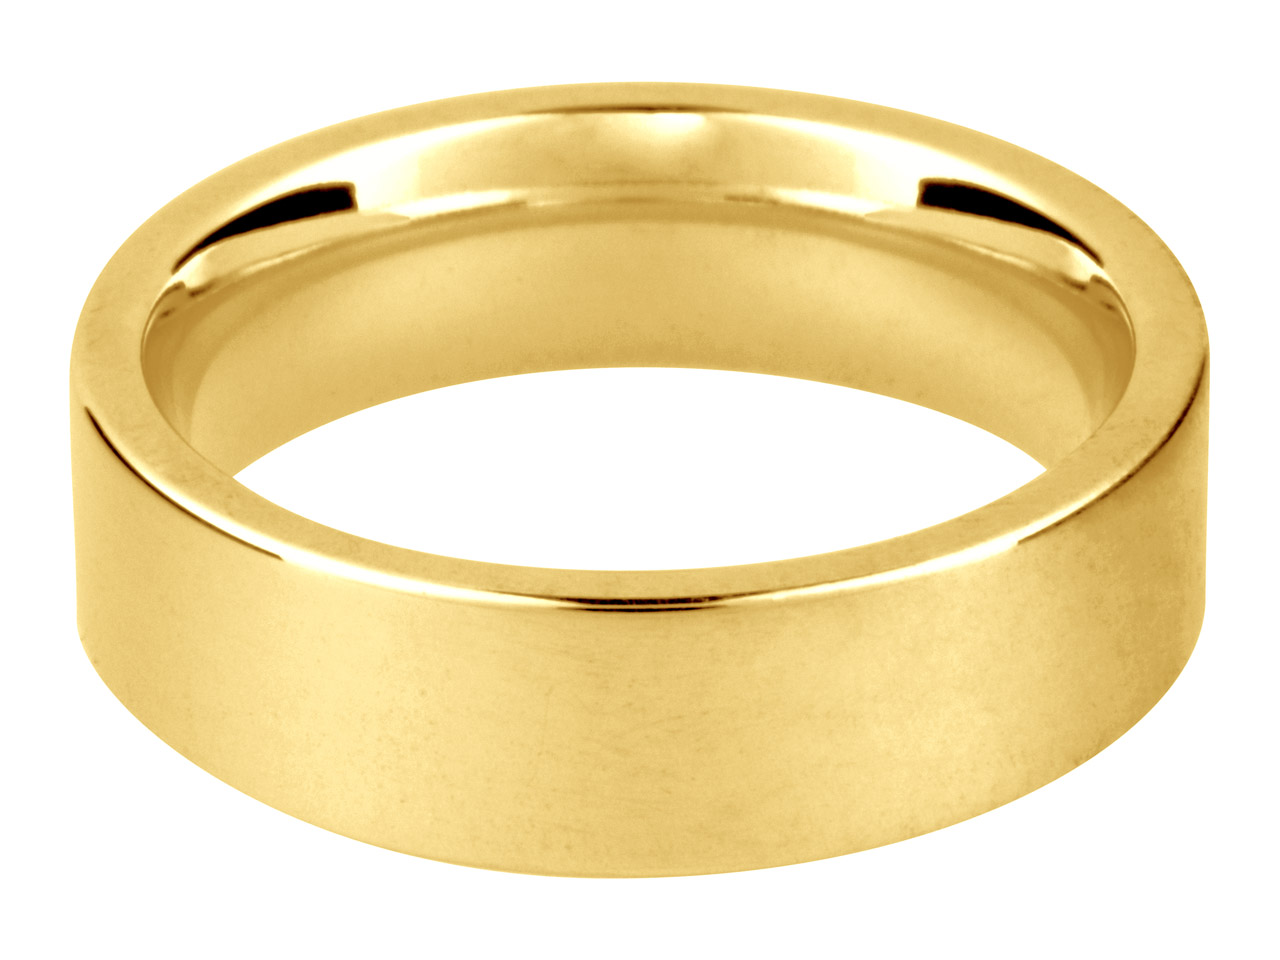 18ct Yellow Easy Fit Wedding Ring  2.0mm J 2.5gms Medium Weight       Hallmarked Wall Thickness 1.45mm